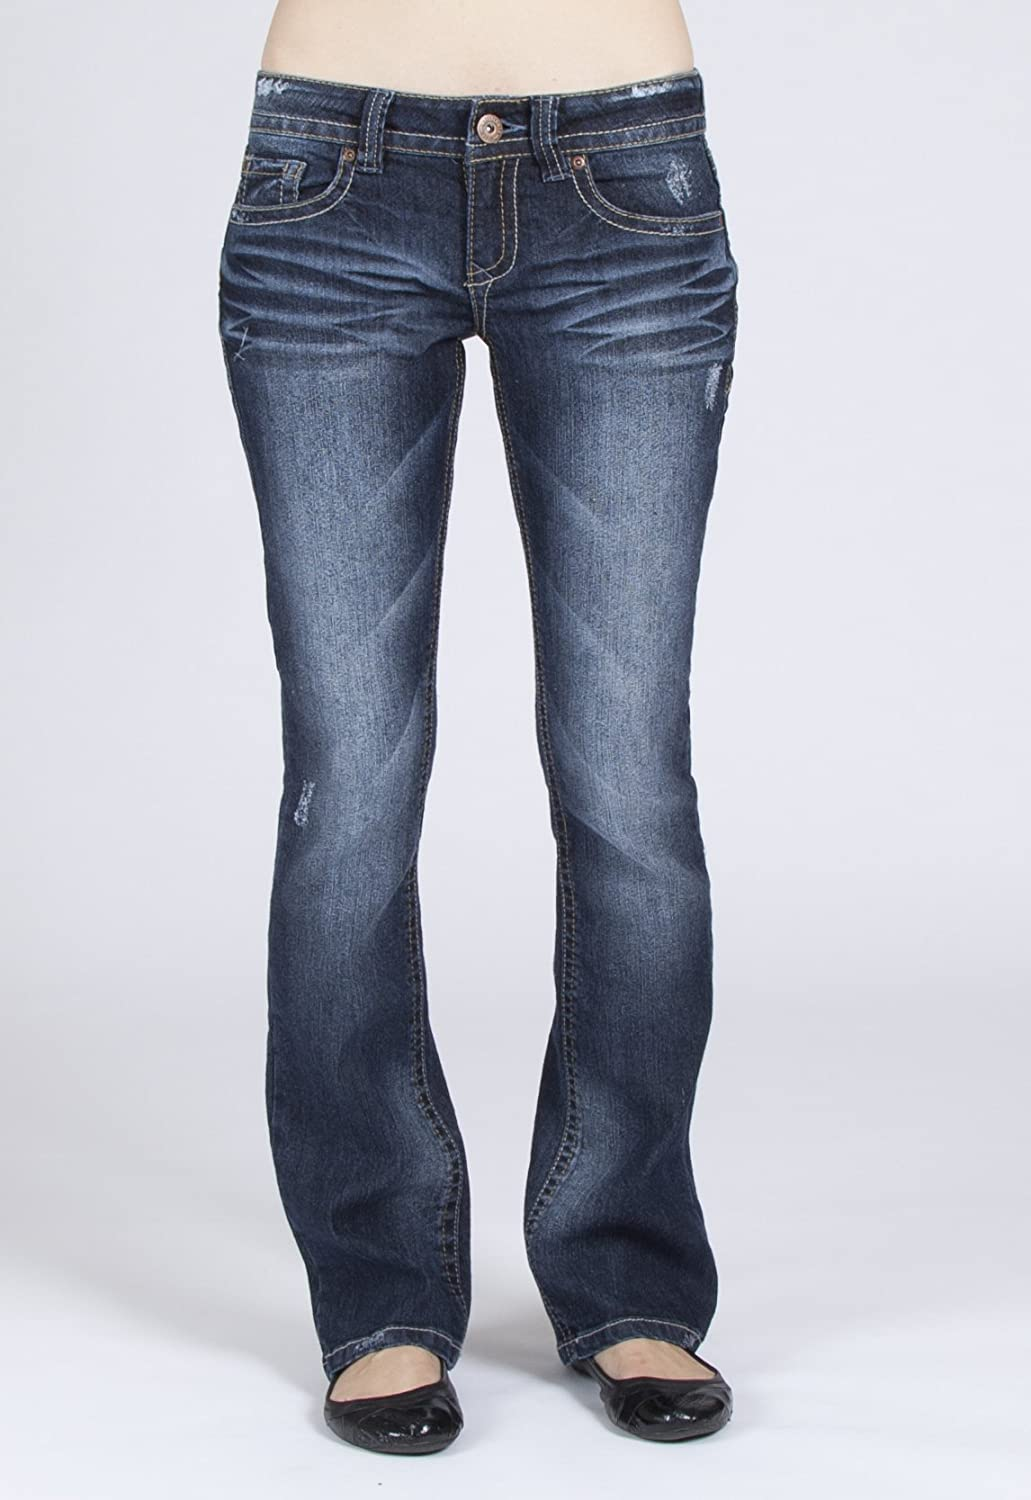 1HR1310-480-13 Wallflower Junior Legendary Bootcut Jeans in Dark Sandblast Size: 13